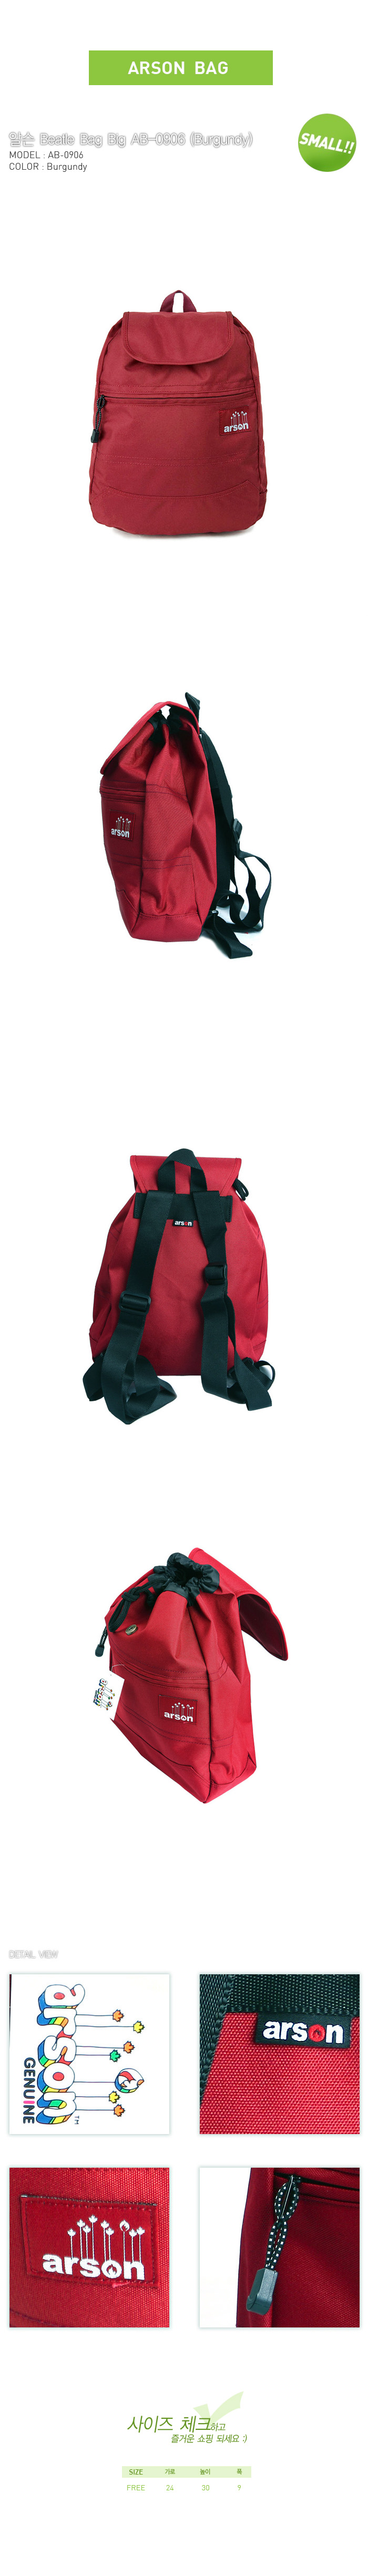 [ ARSON ] AB-0906 (Burgundy)/Backpack School Bag